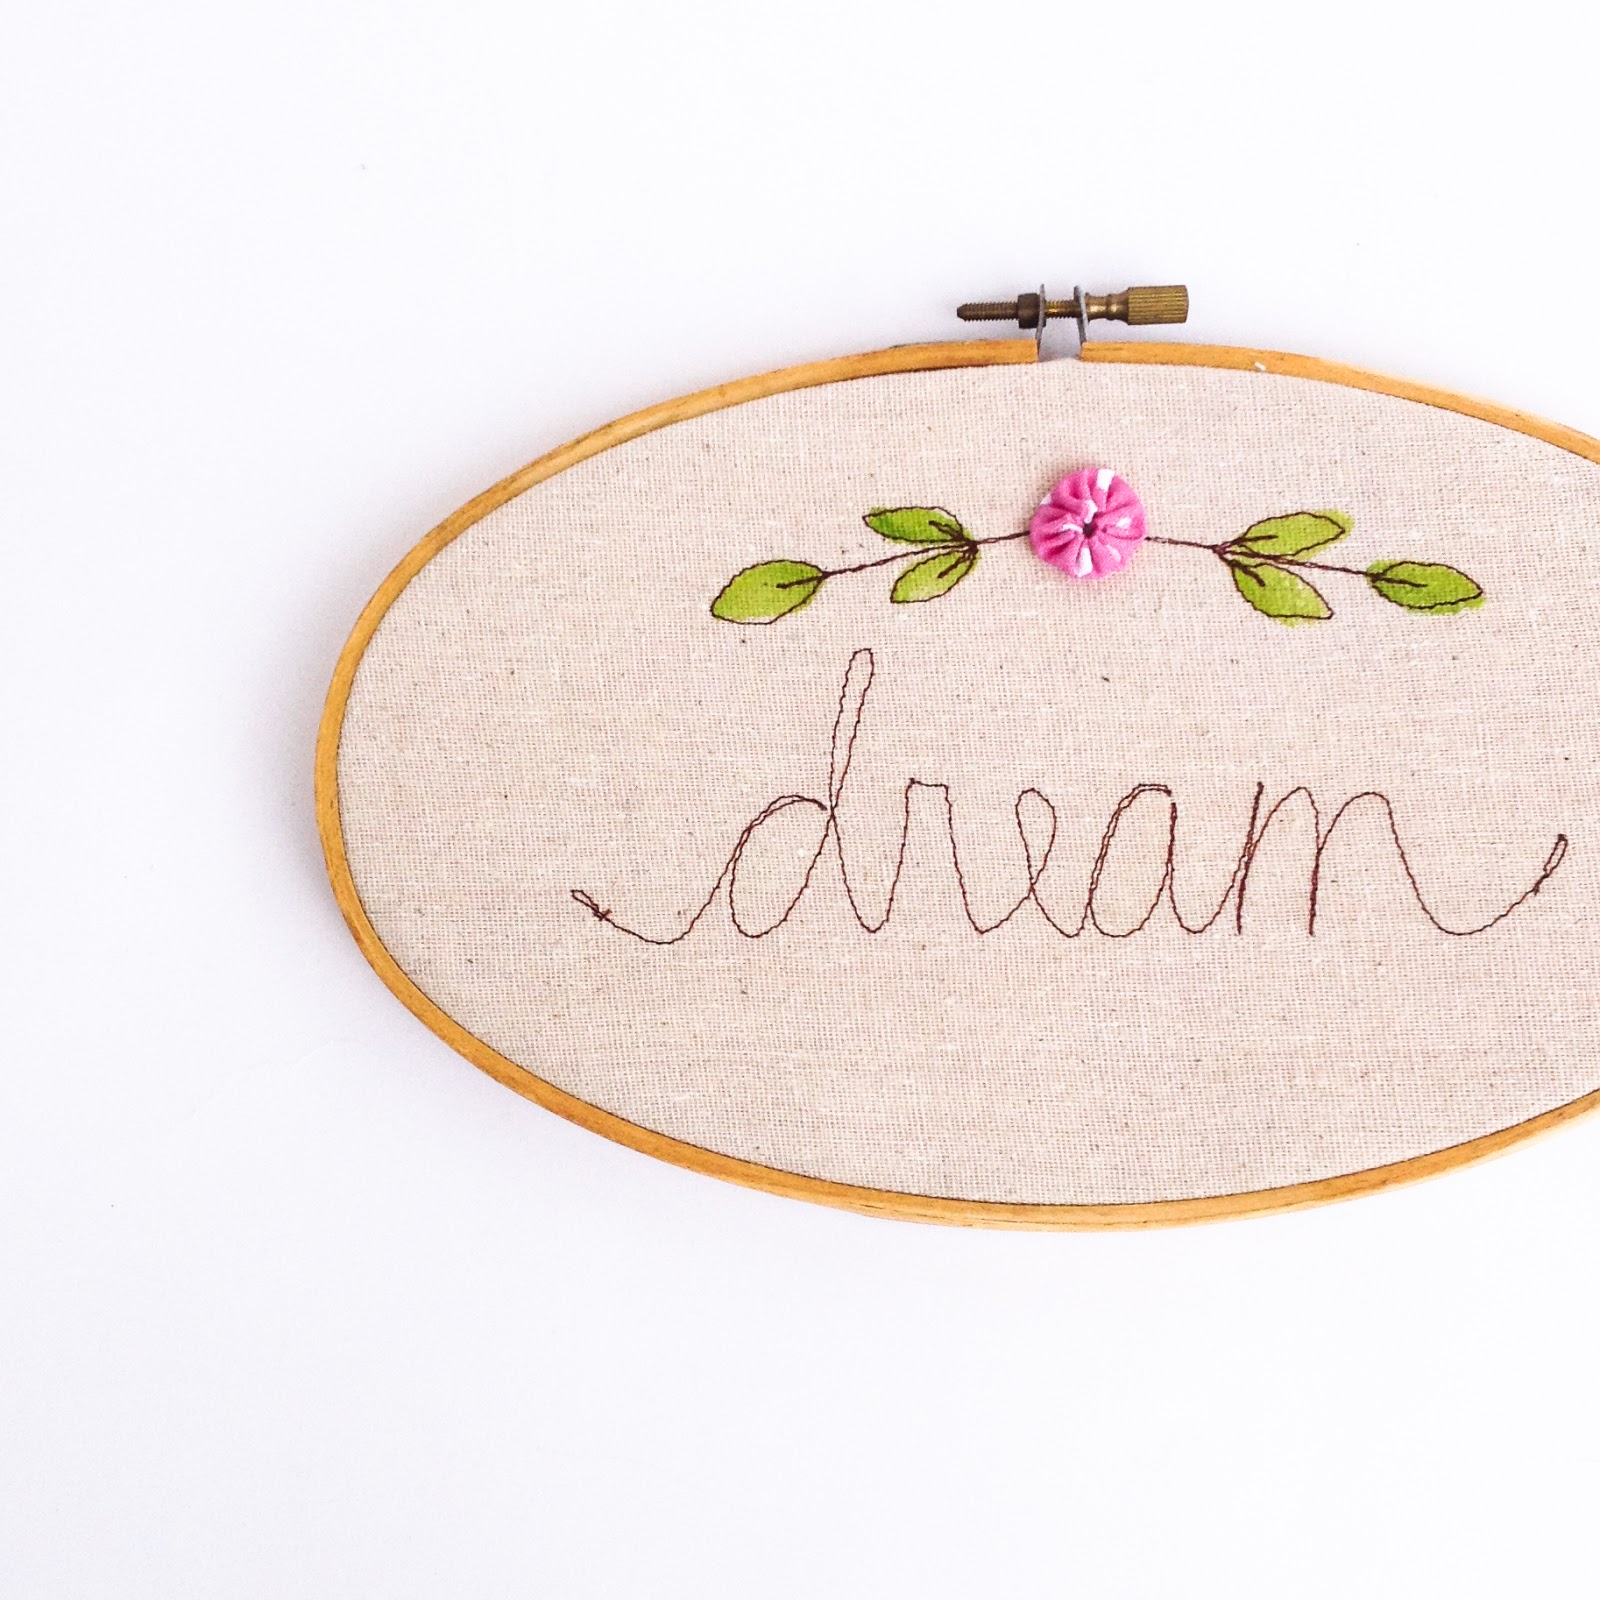 https://www.etsy.com/listing/180366777/pink-embroidery-hoop-art-personalized?ref=shop_home_active_6